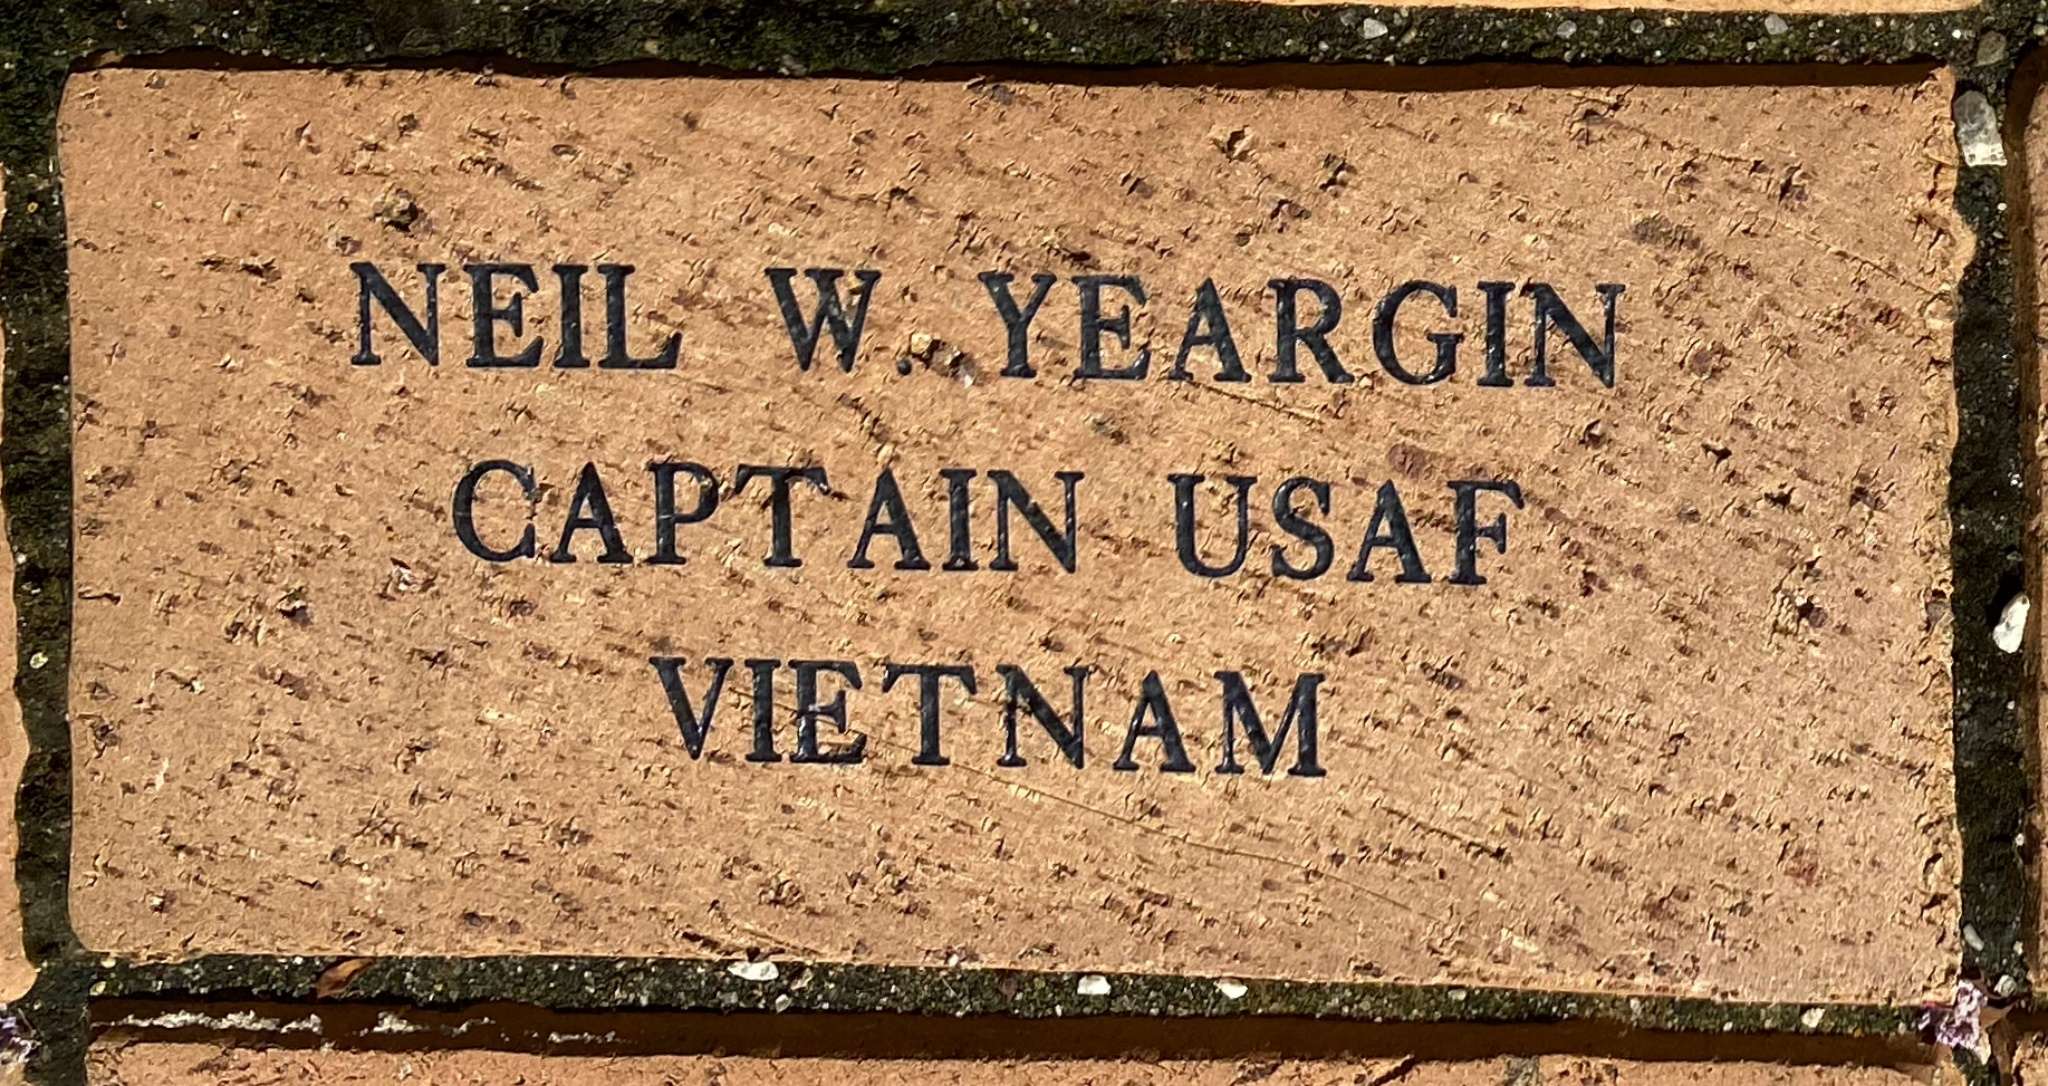 NEIL W. YEARGIN CAPTAIN USAF VIETNAM